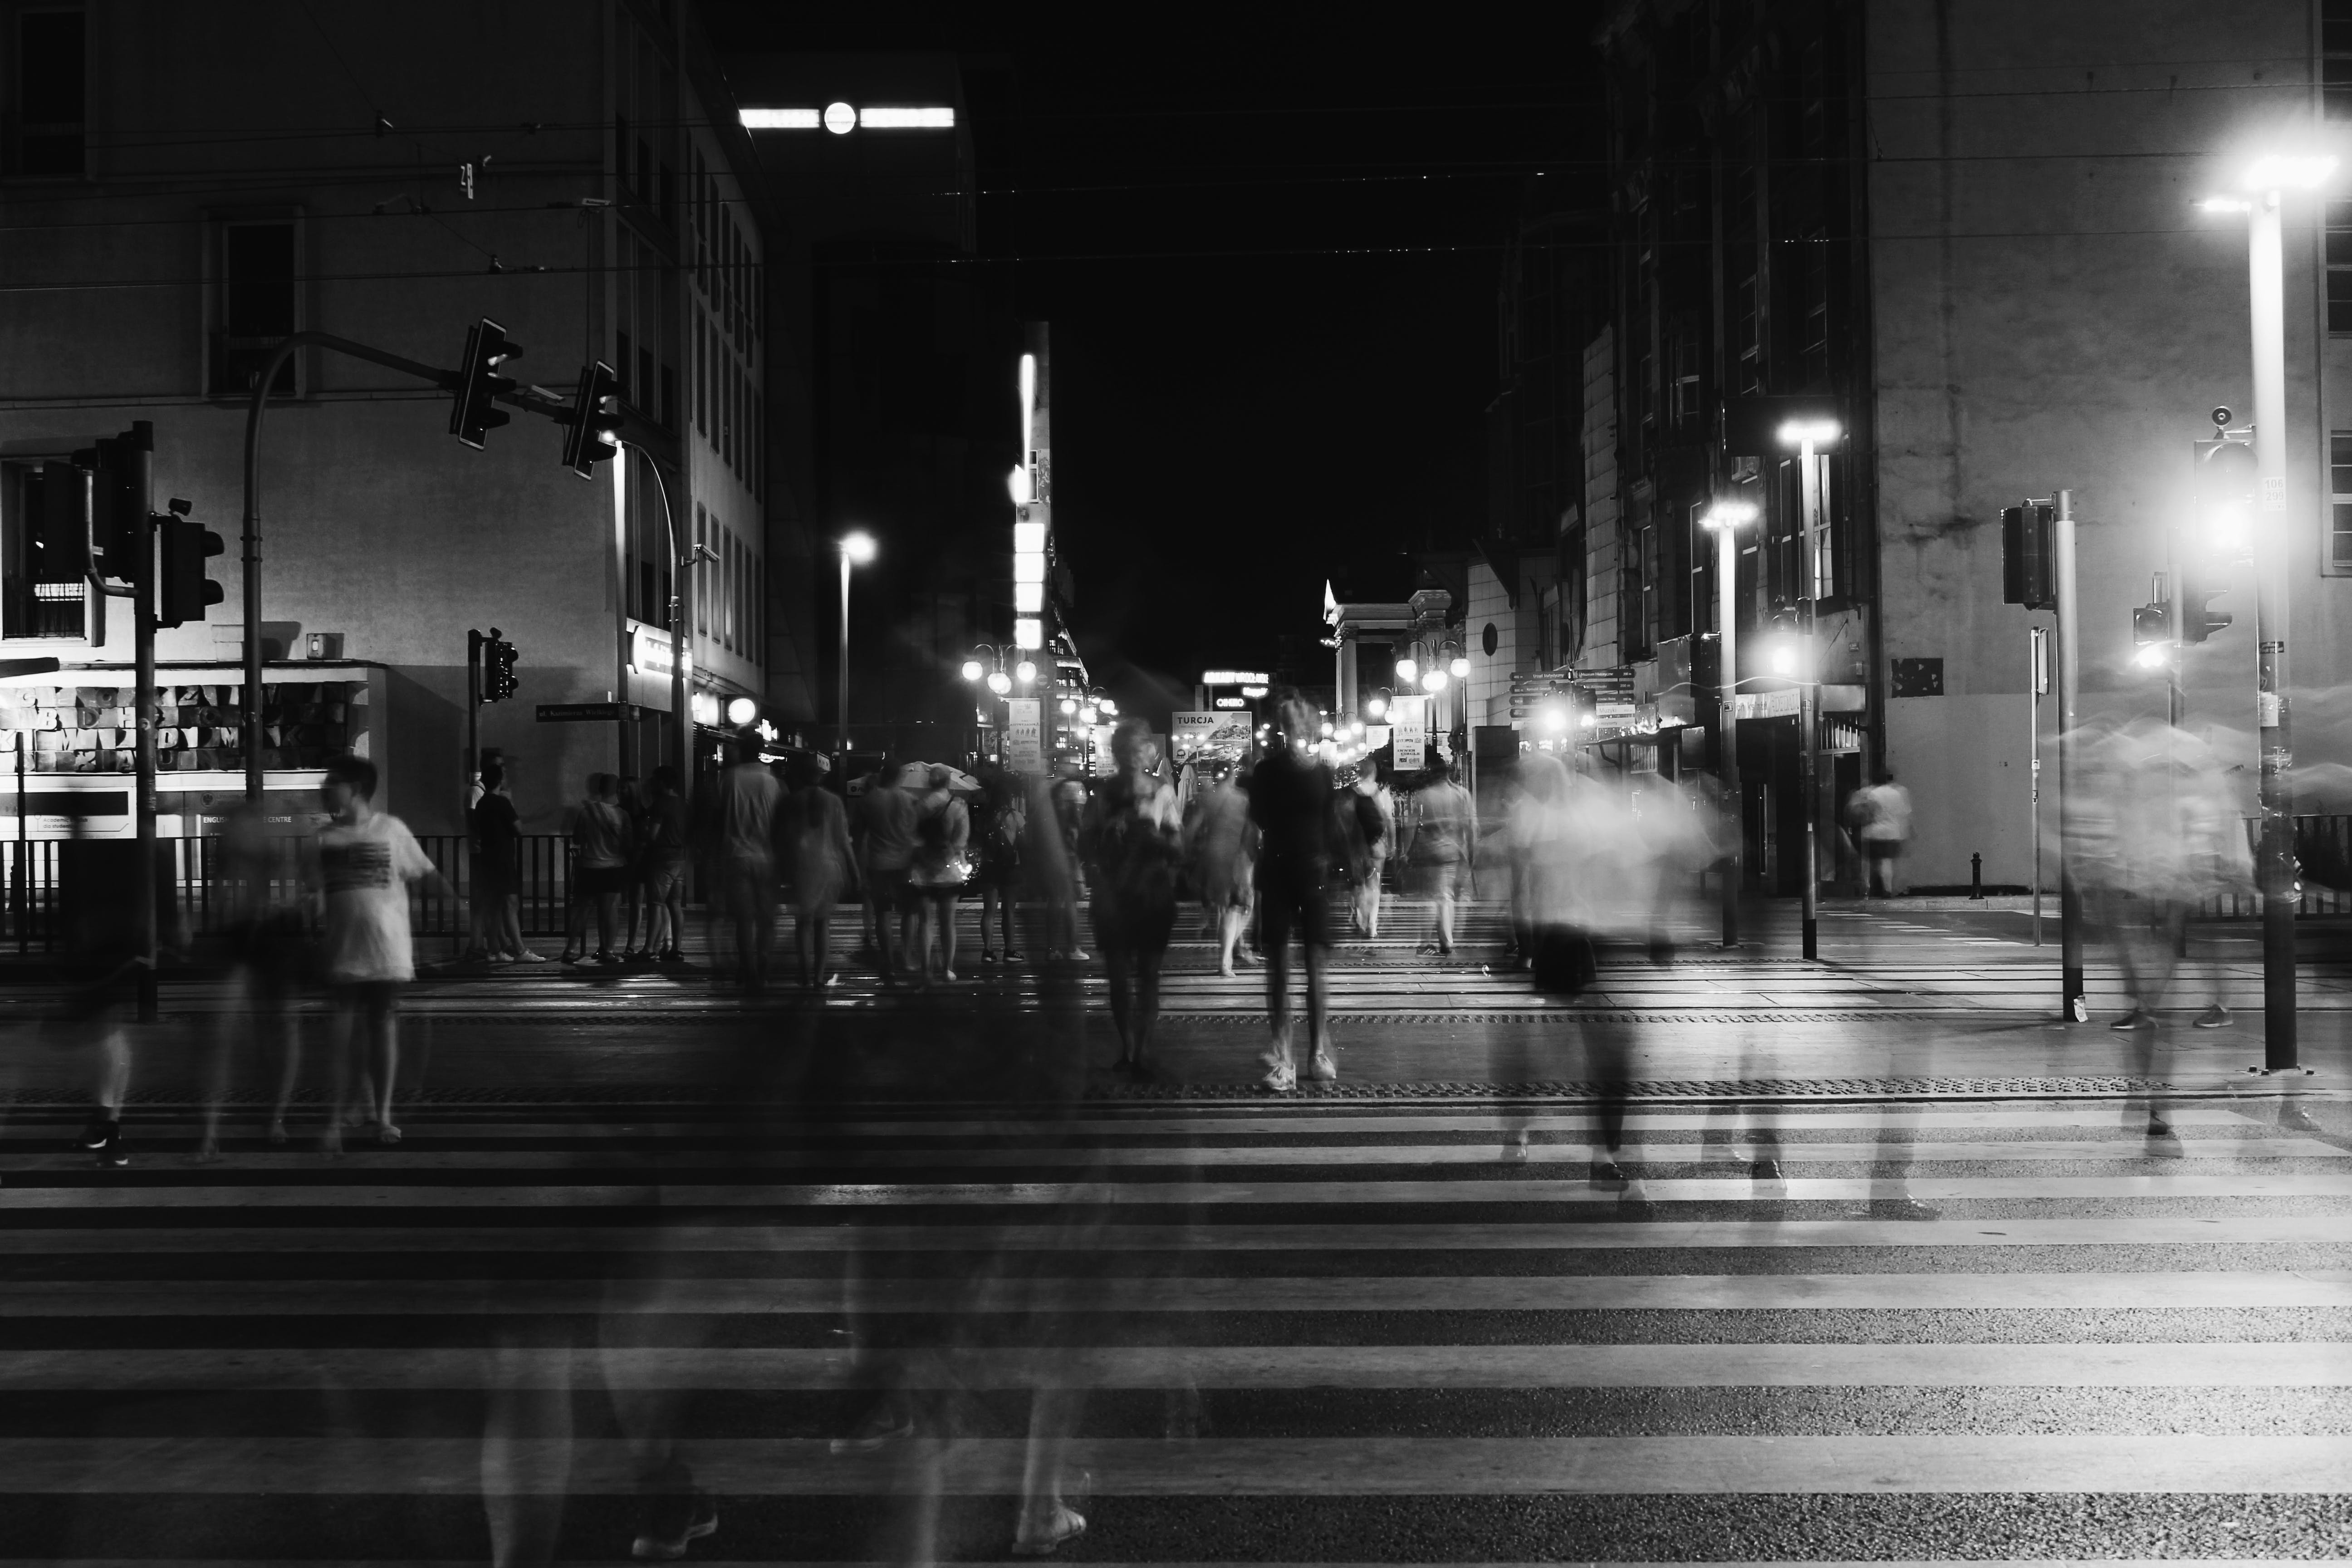 Group of People Crossing Pedestrian Lane in Greyscale